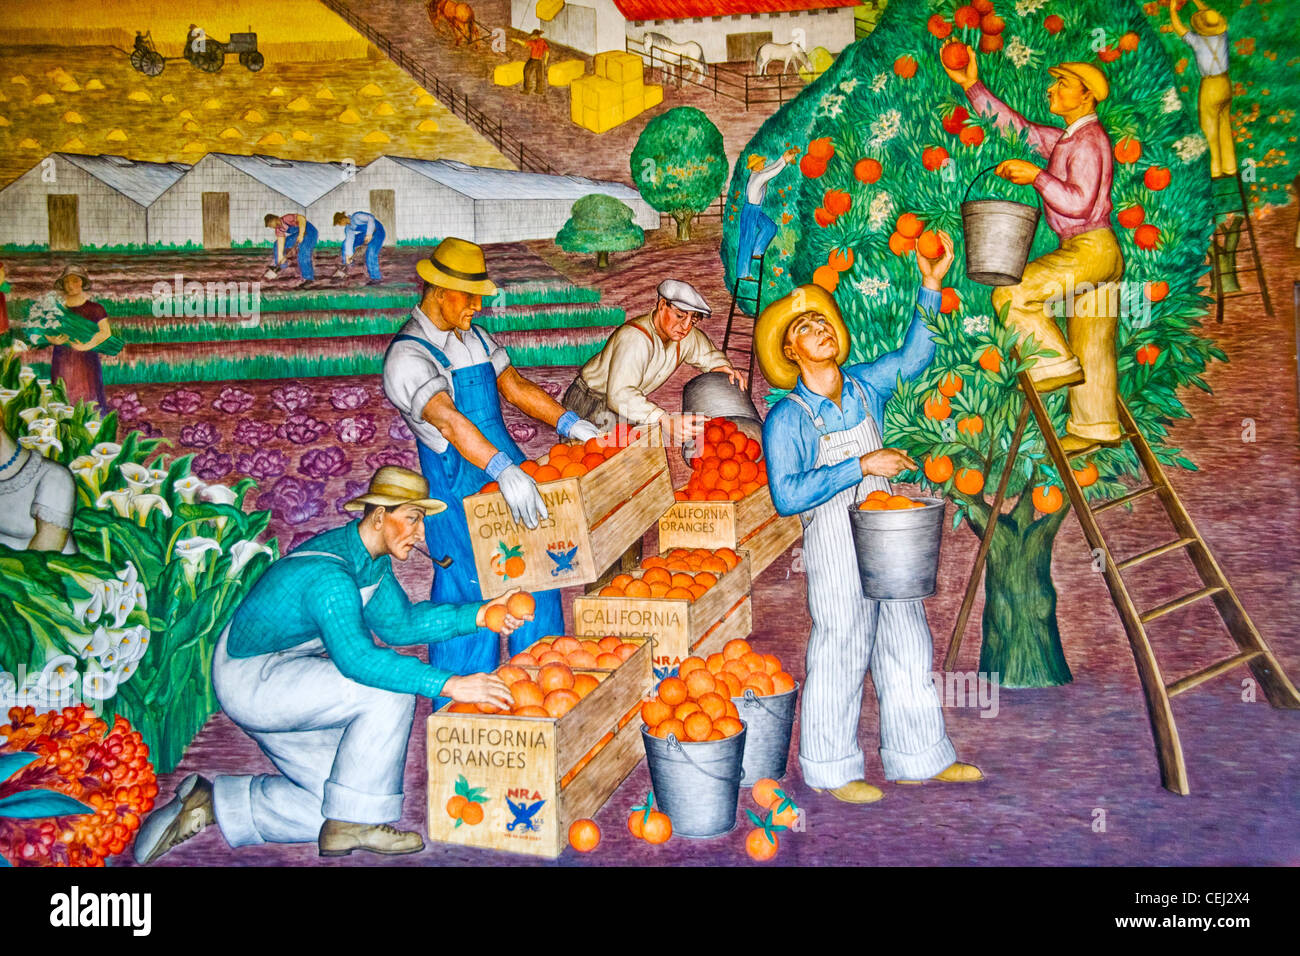 Created in 1934 by artist Maxine Albro, a fresco in the Social Realism artistic style entitled 'California Agriculture' - Stock Image